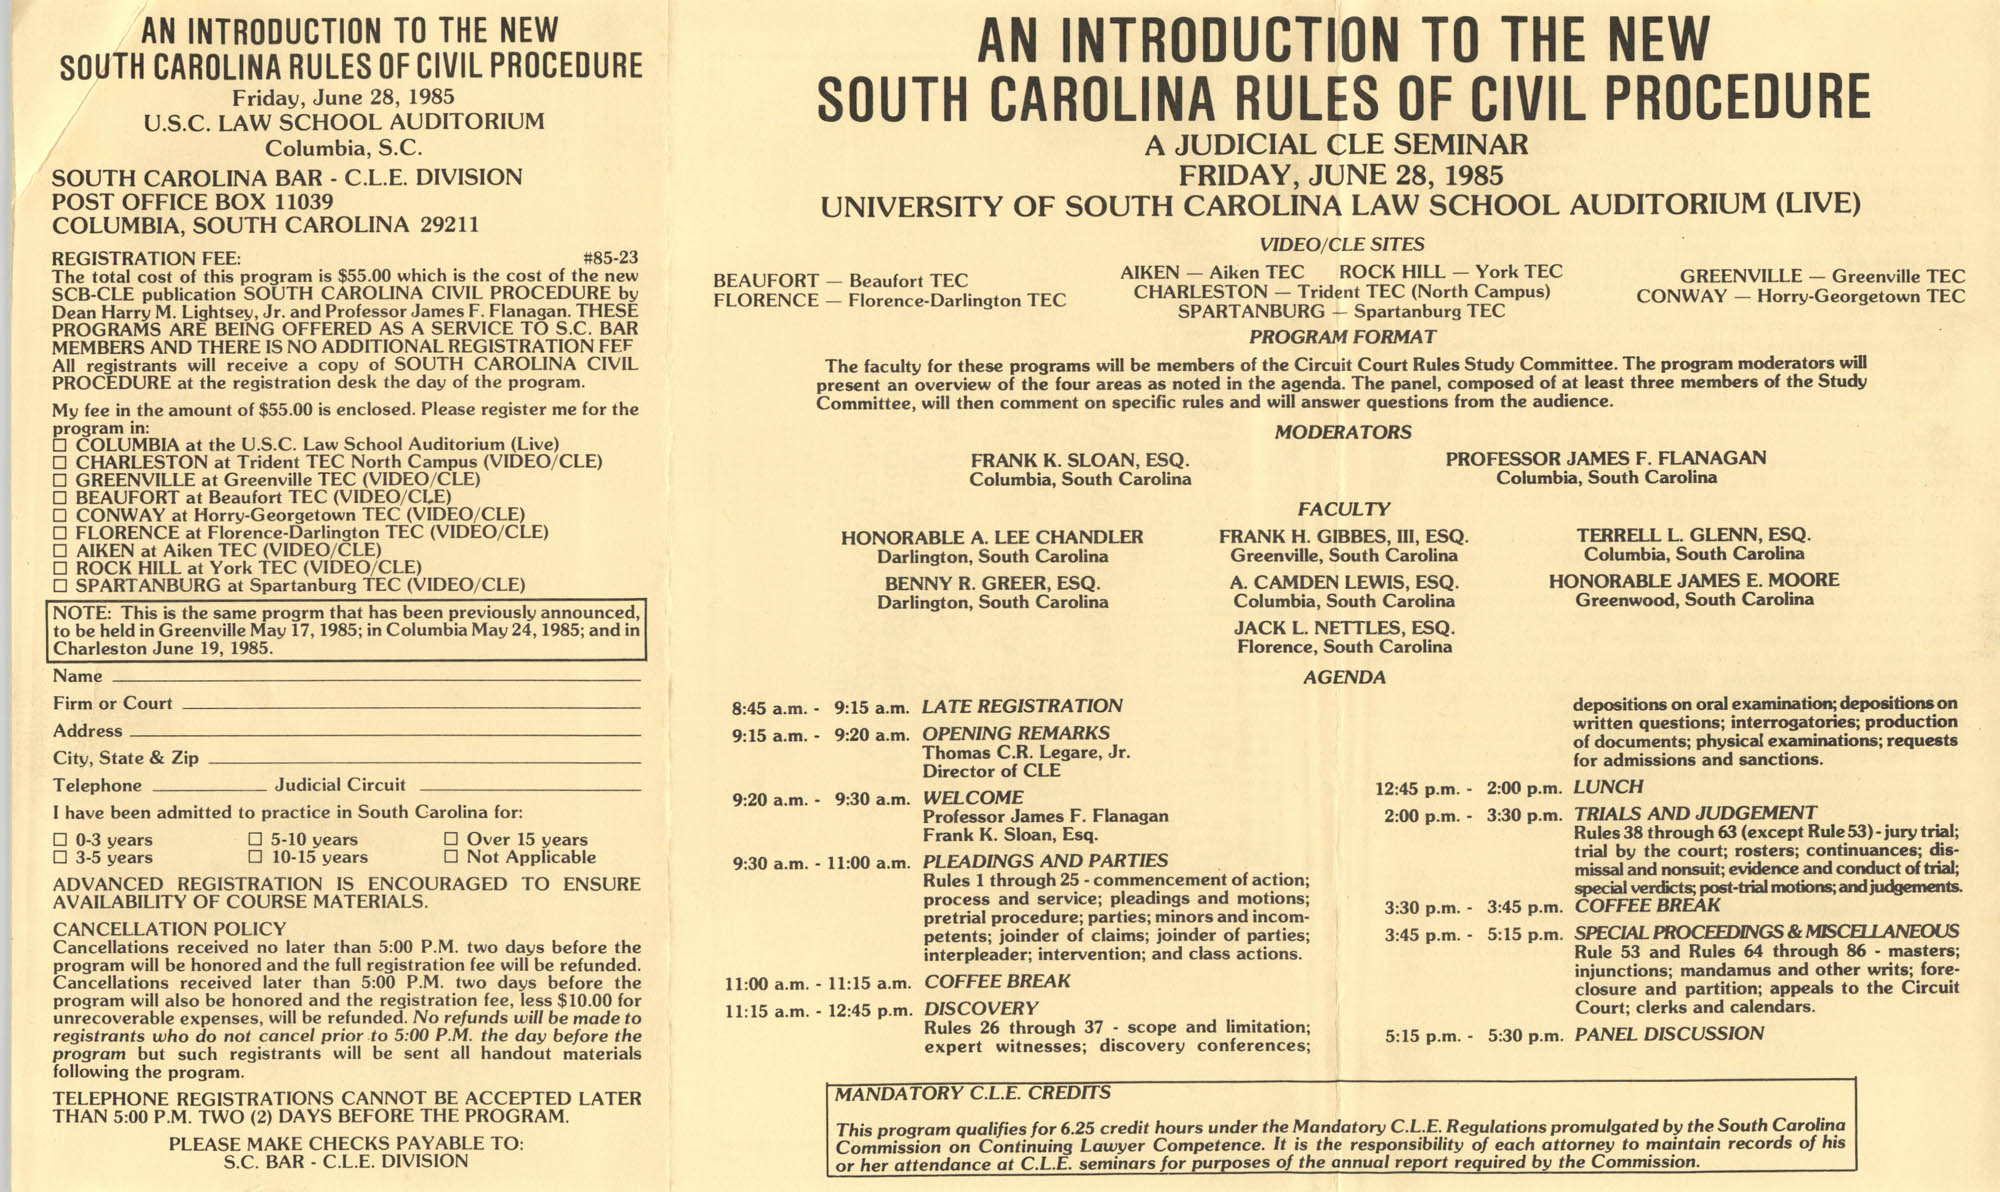 An Introduction to the New South Carolina Rules of Civil Procedure, Continuing Judicial Education Seminar, June 28, 1985